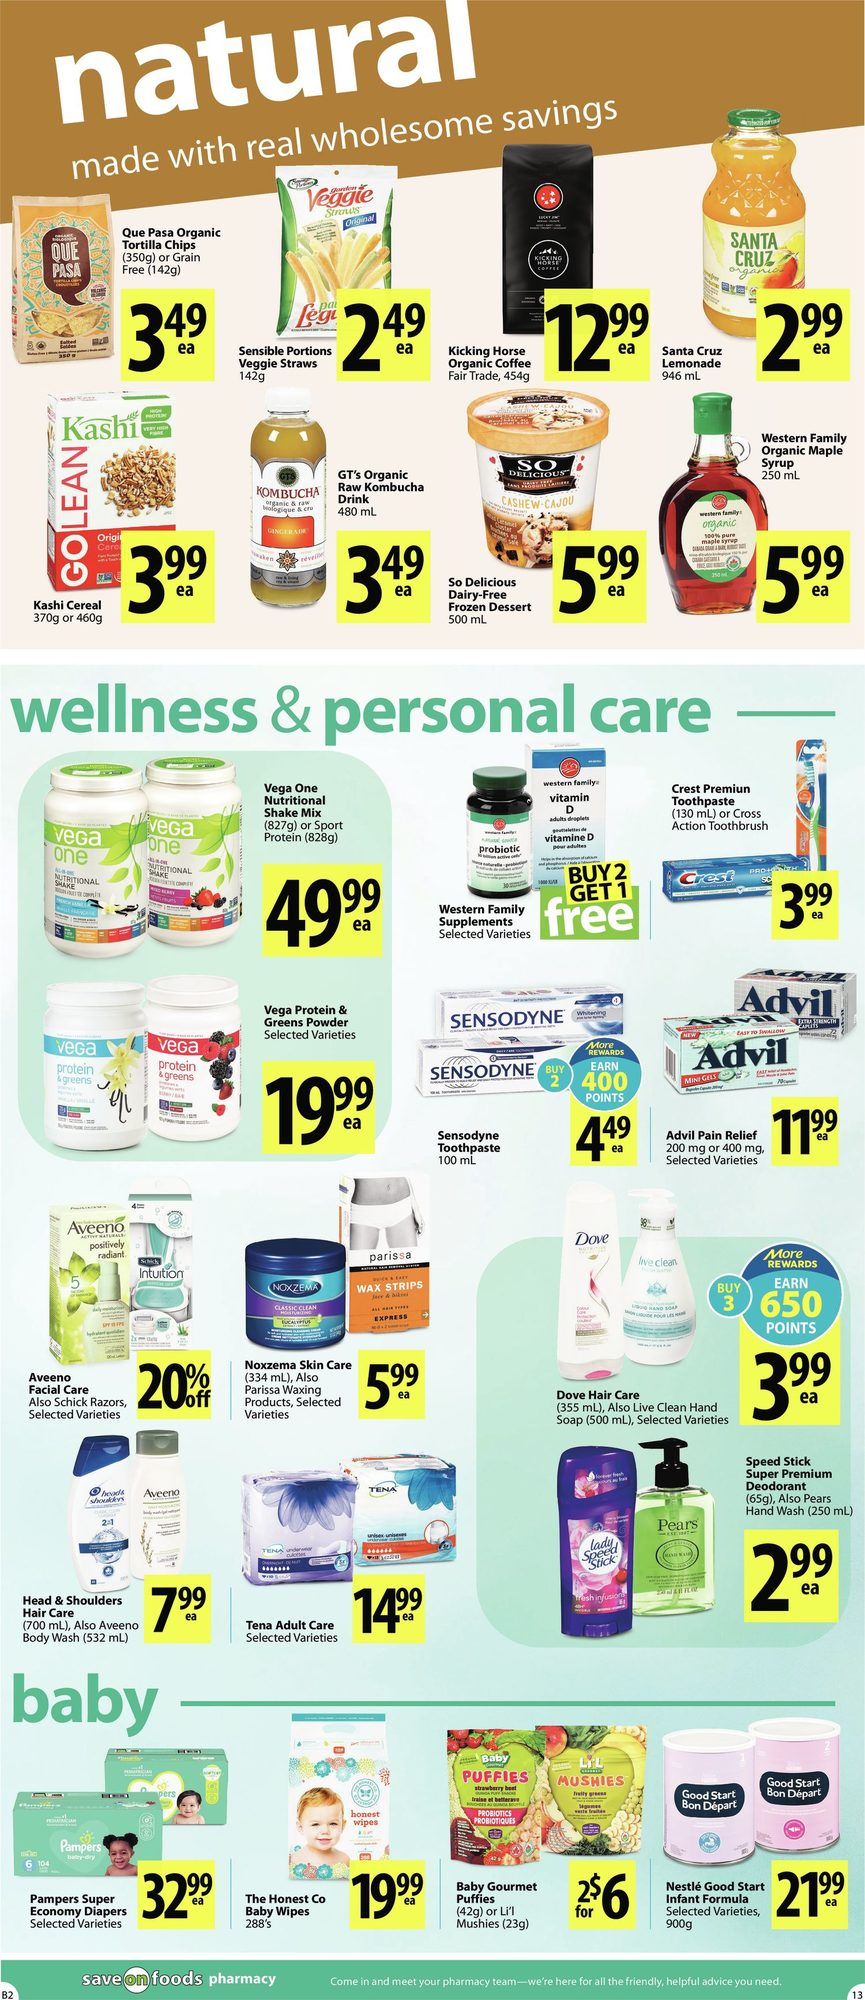 Save-On-Foods - Weekly Flyer Specials - Page 13